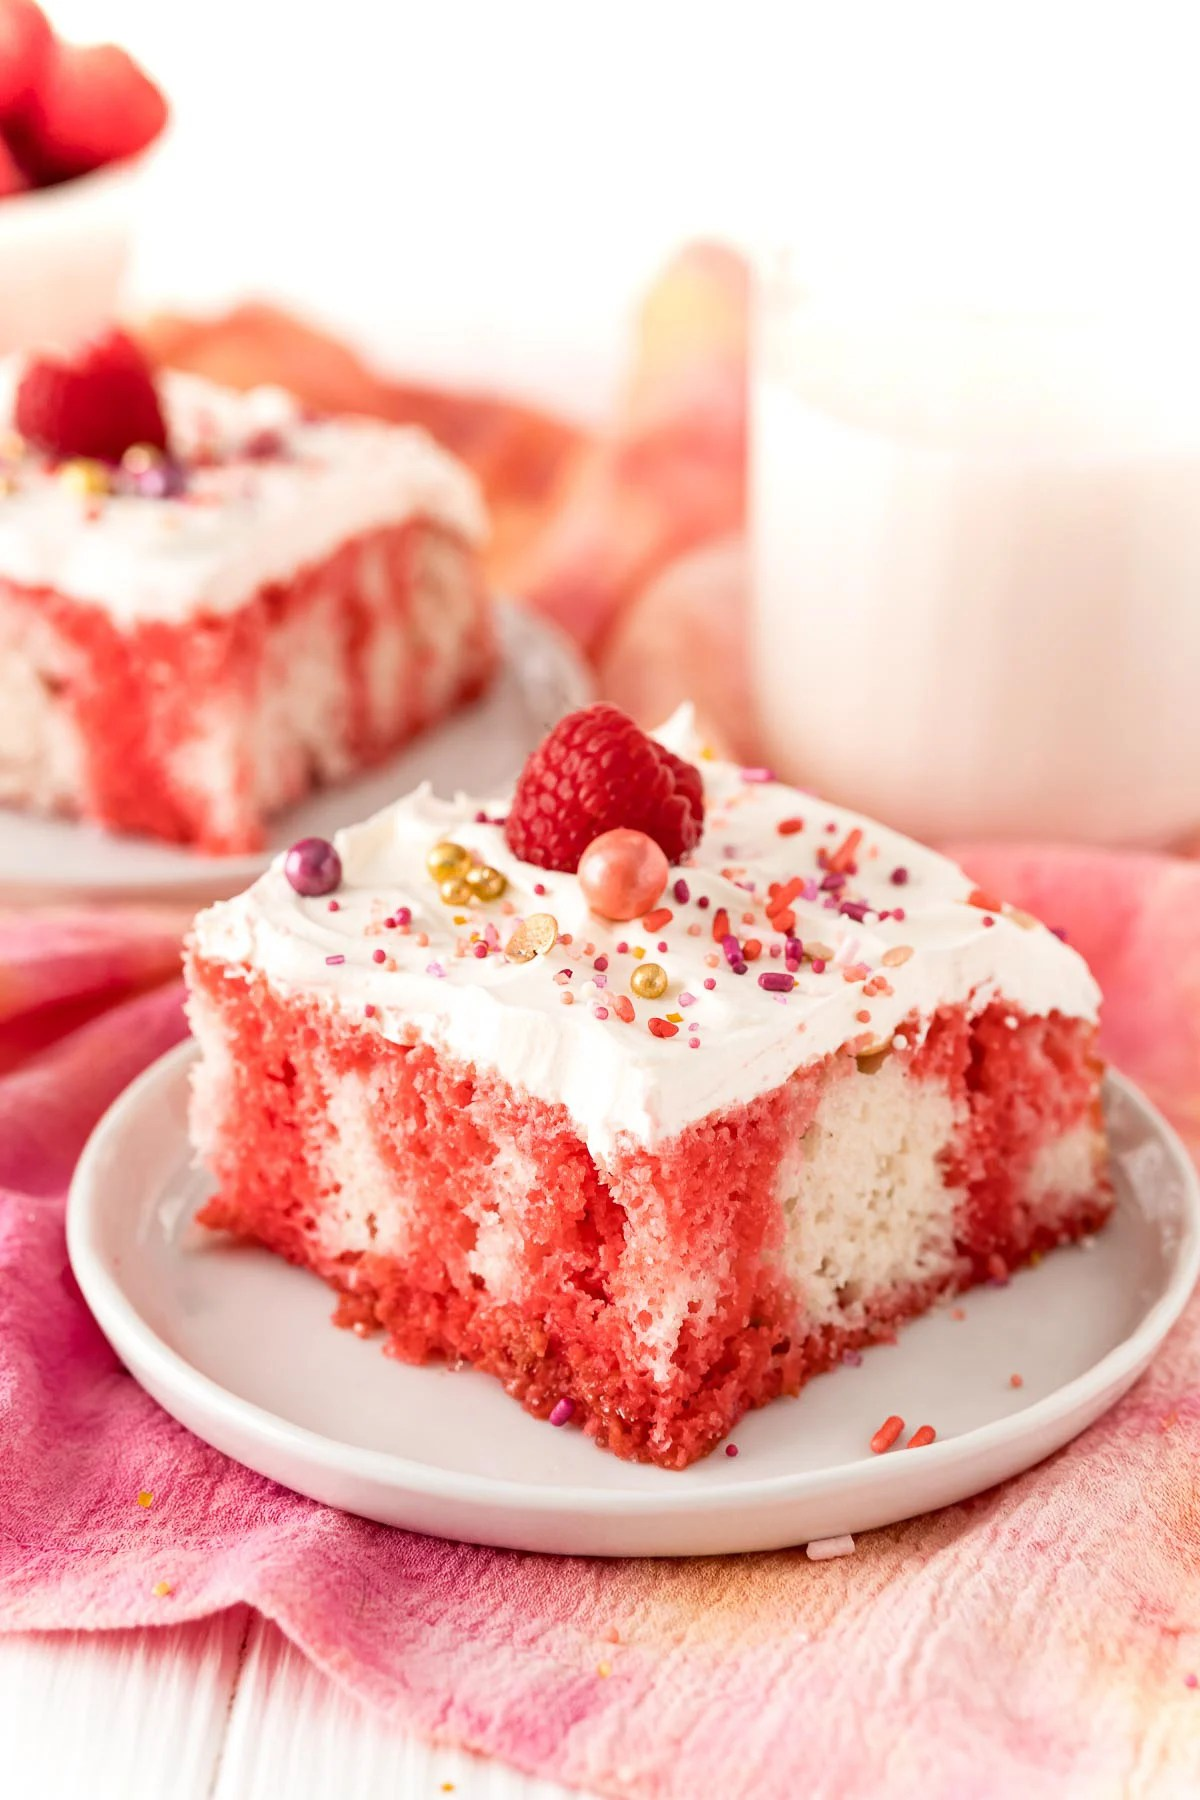 Slice of Raspberry Jello Poke Cake on white plate topped with sprinkles and raspberry